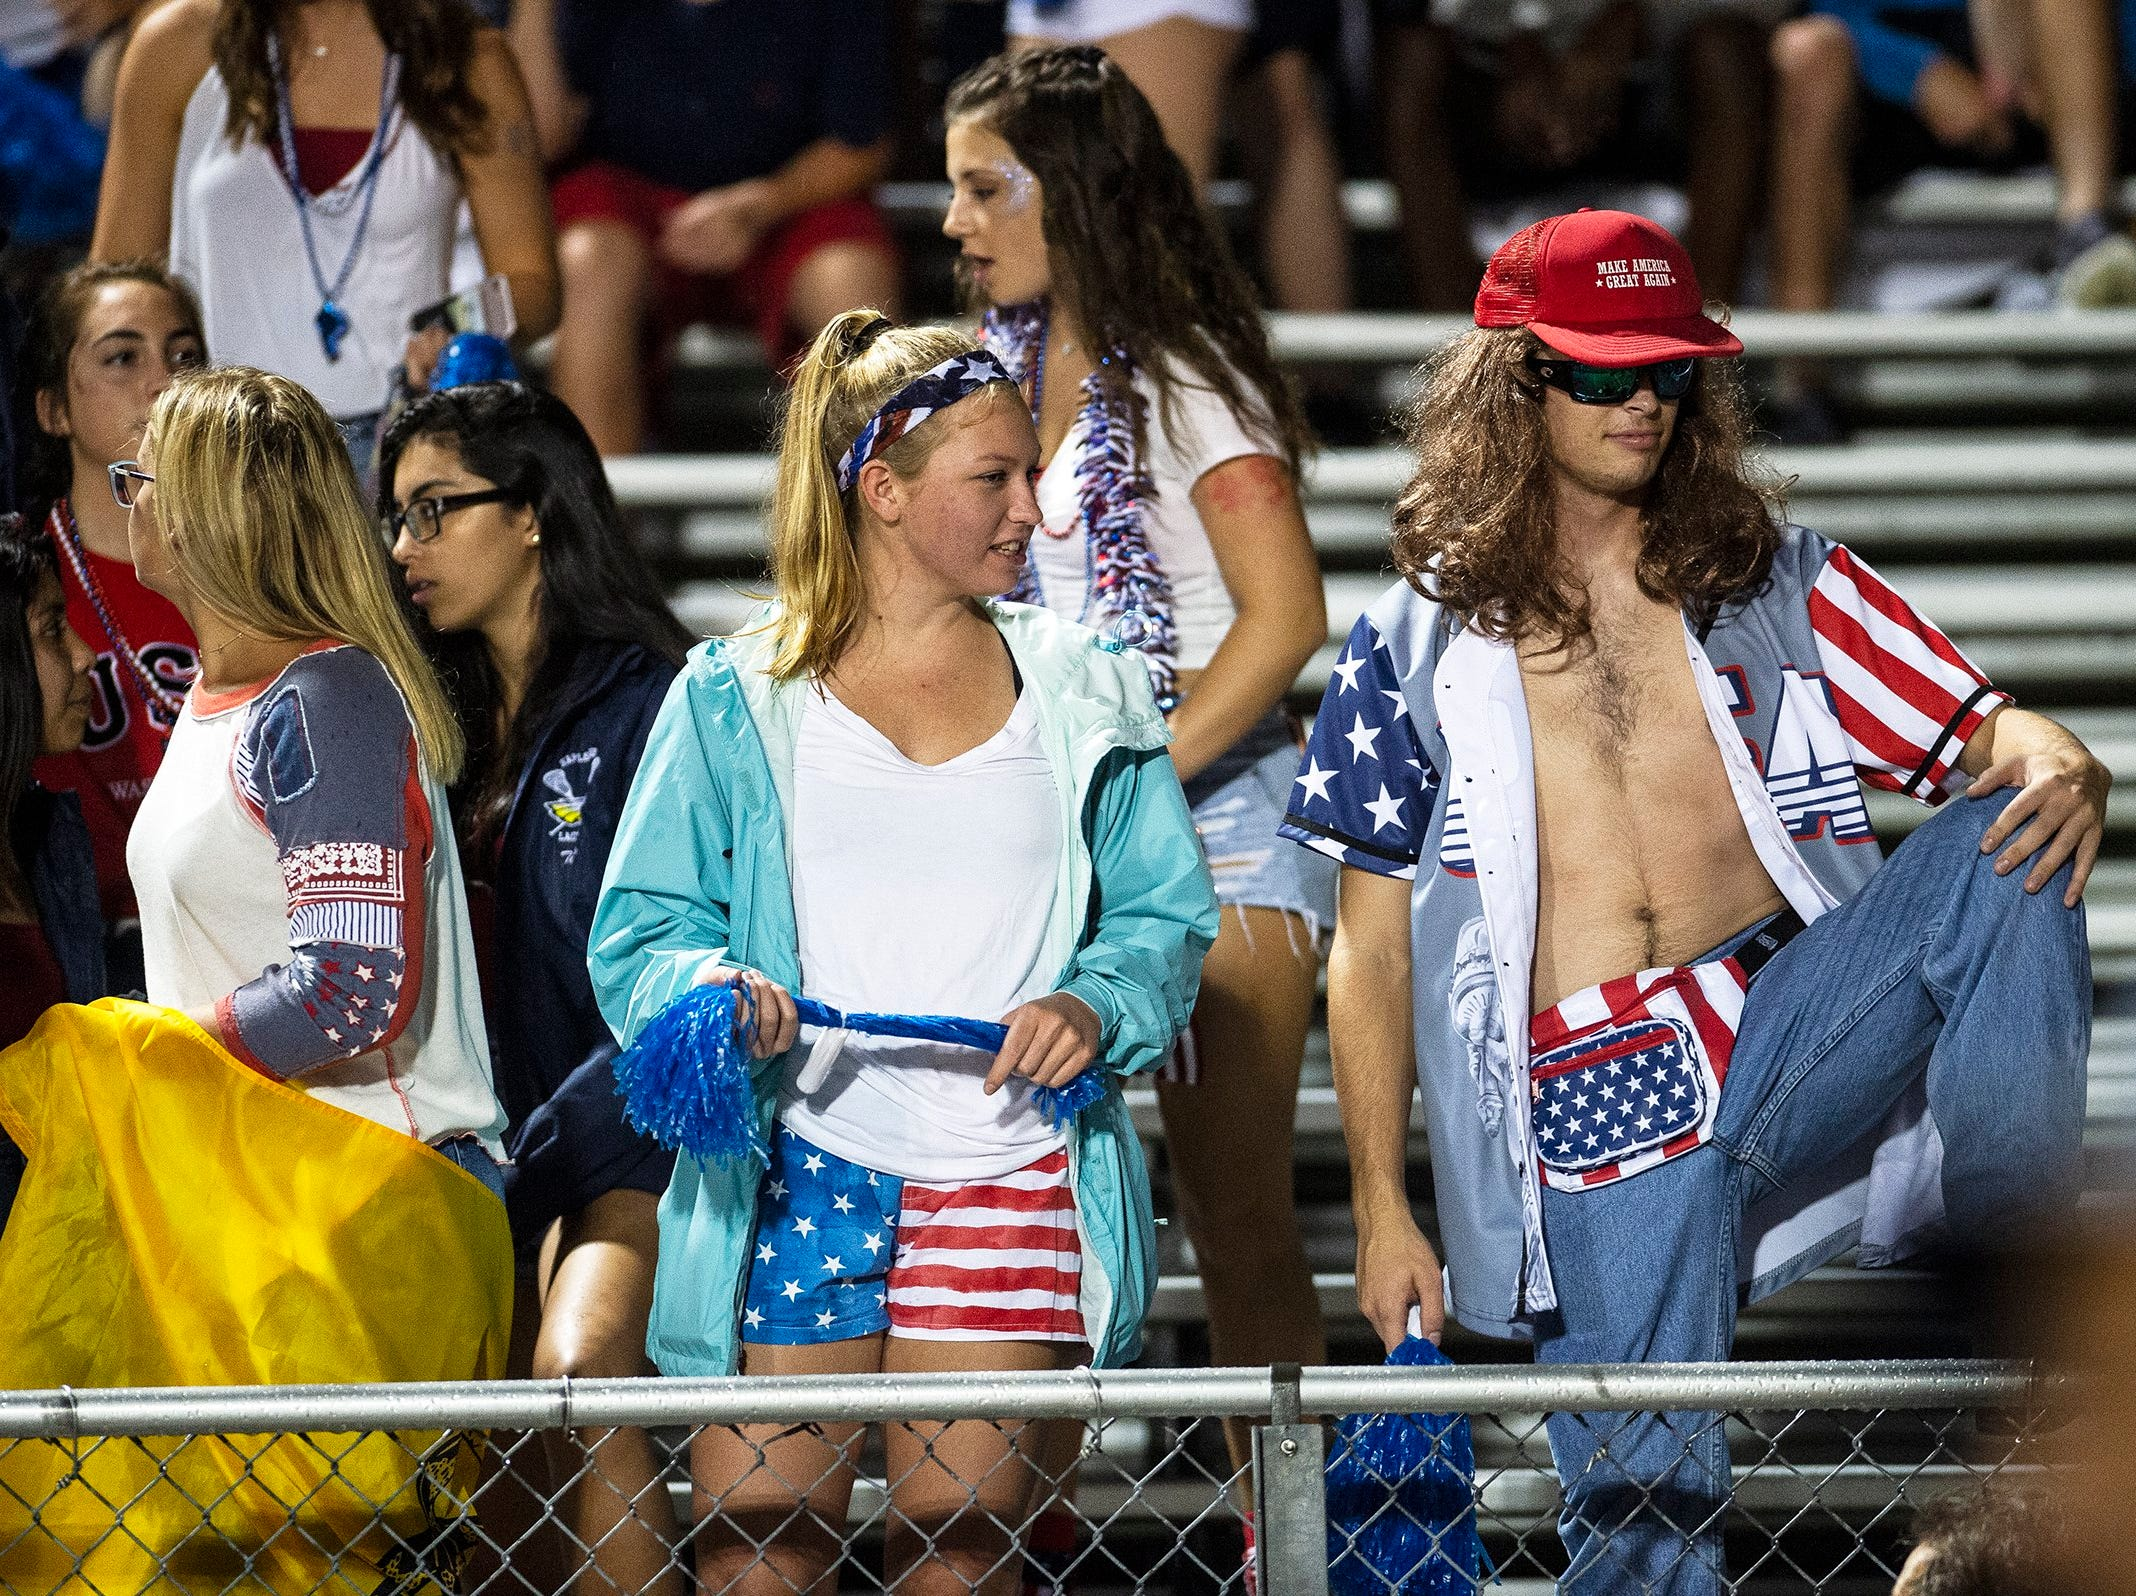 Naples High School students watches as players take the field during a game against Immokalee High School in Naples, Fla. on Friday, September 21, 2018.